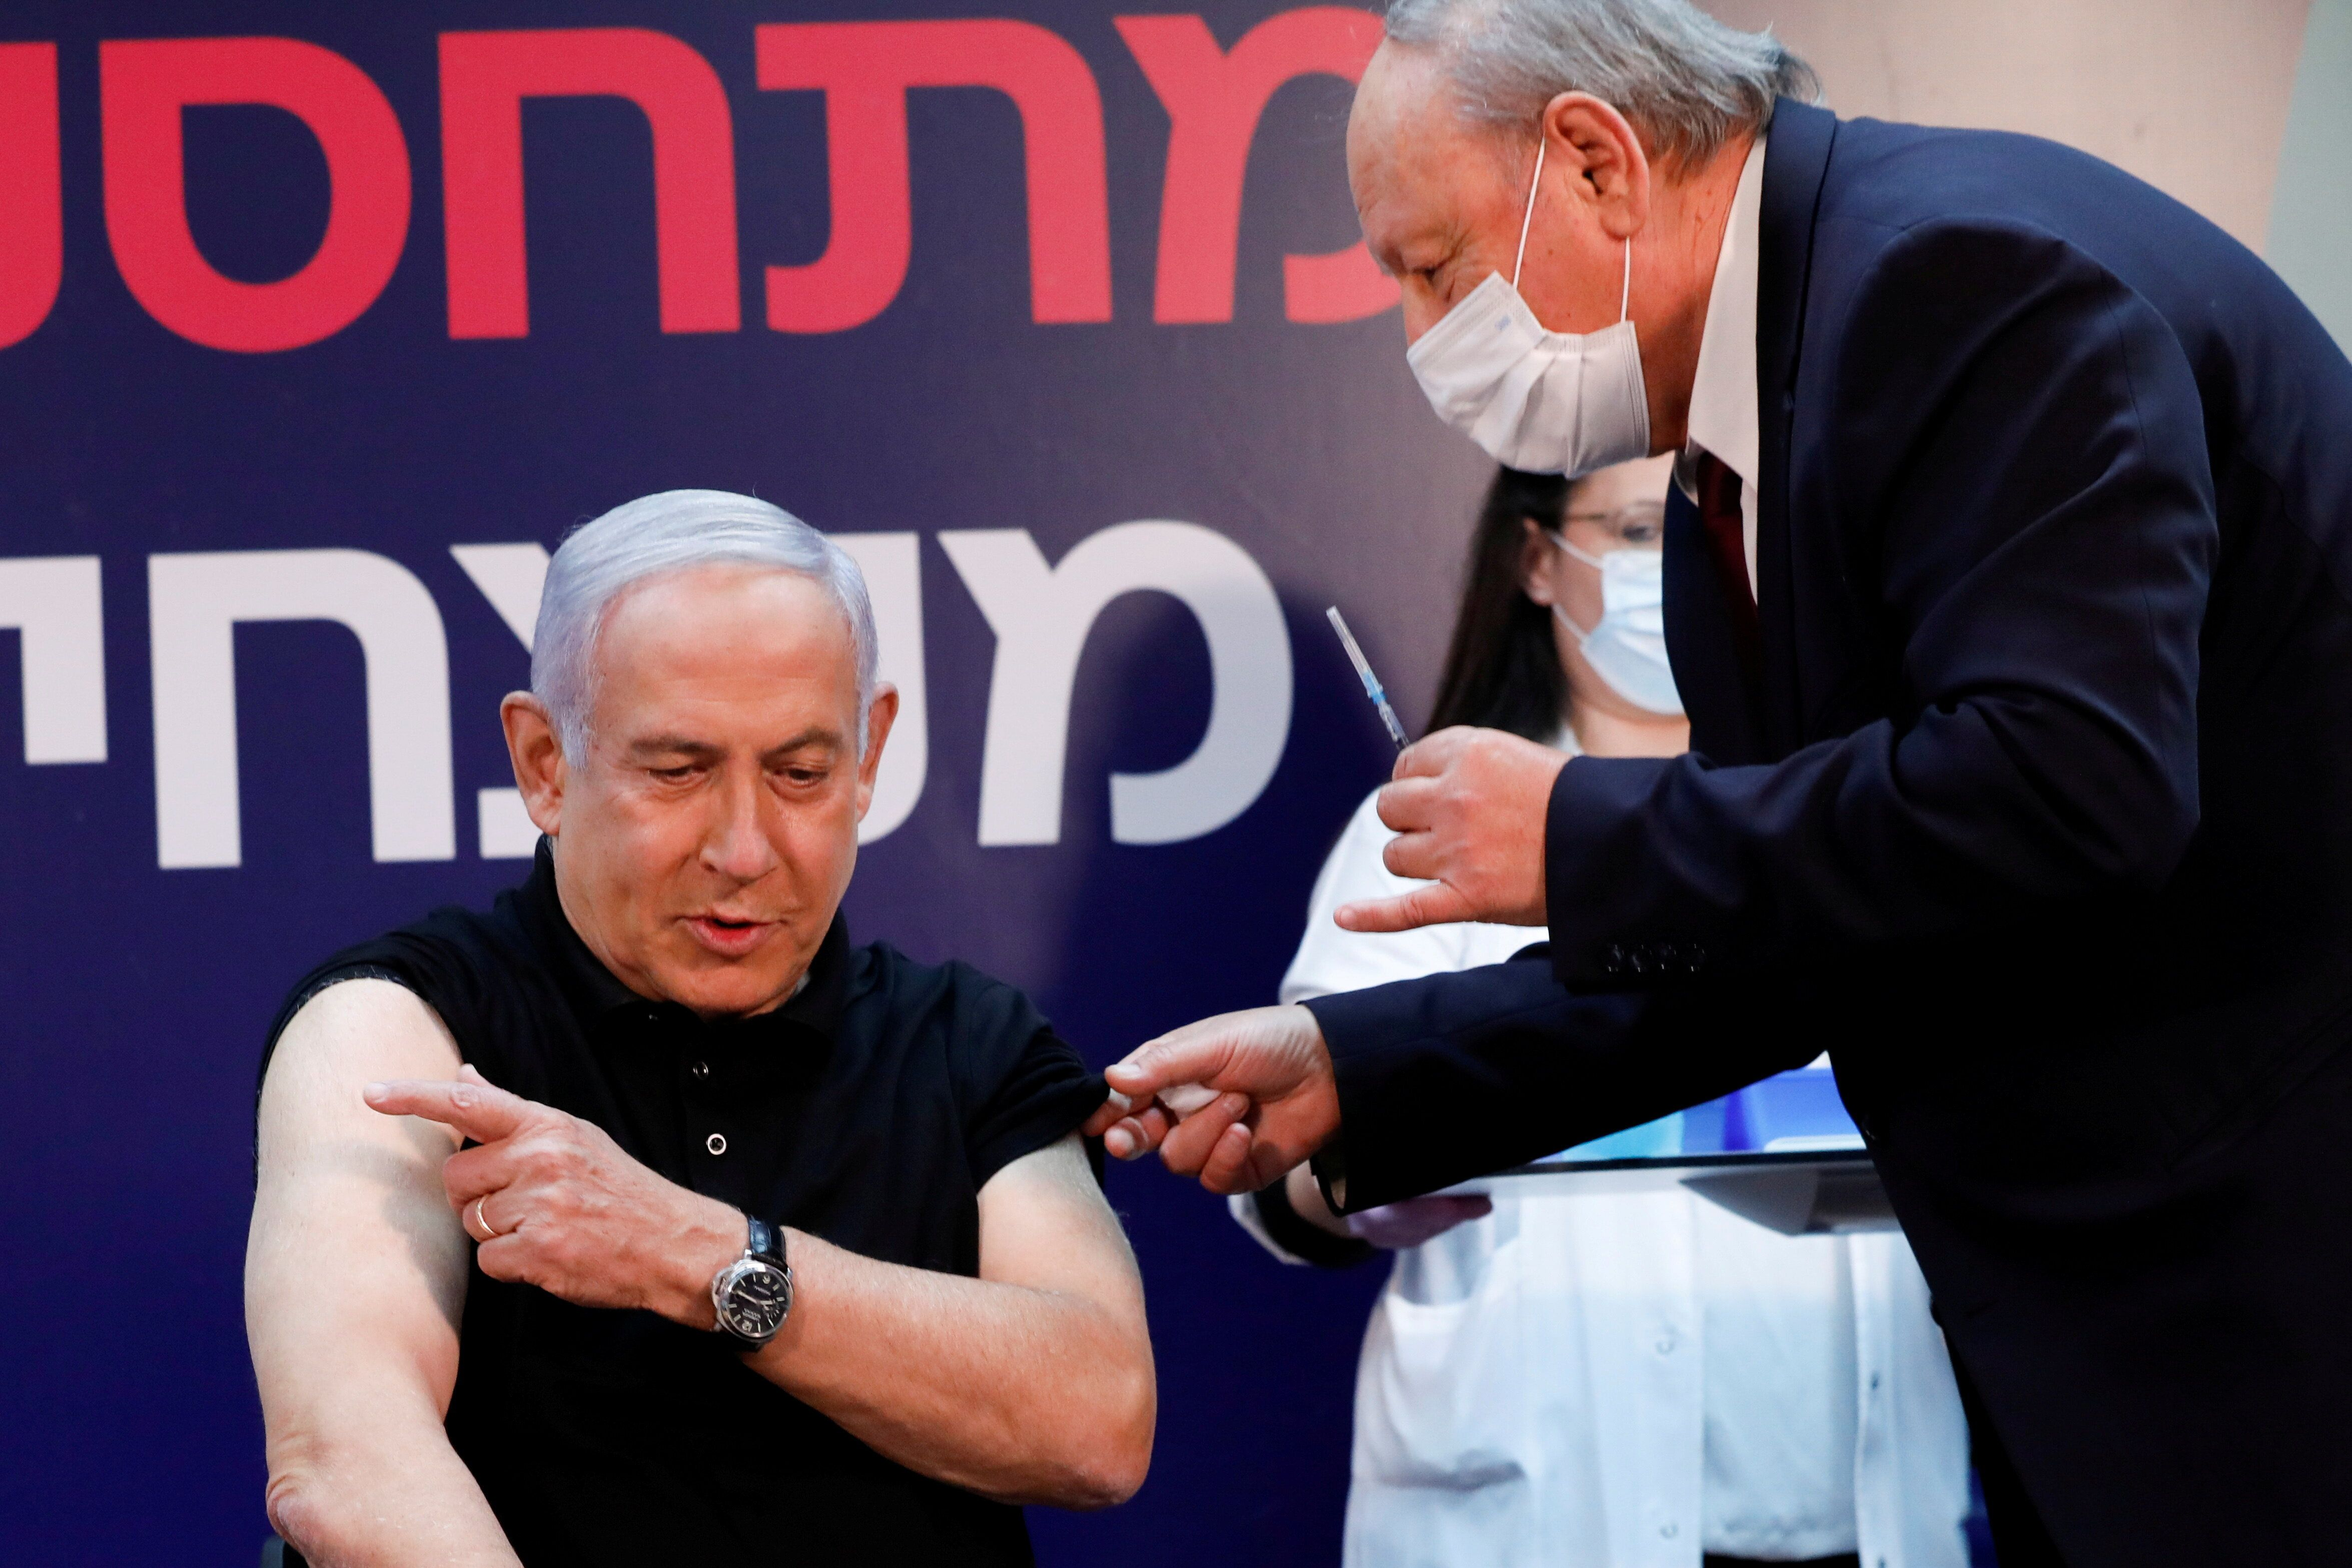 First in line: Israeli Prime Minister Benjamin Netanyahu gets ready to receive a coronavirus vaccine at Sheba Medical Center